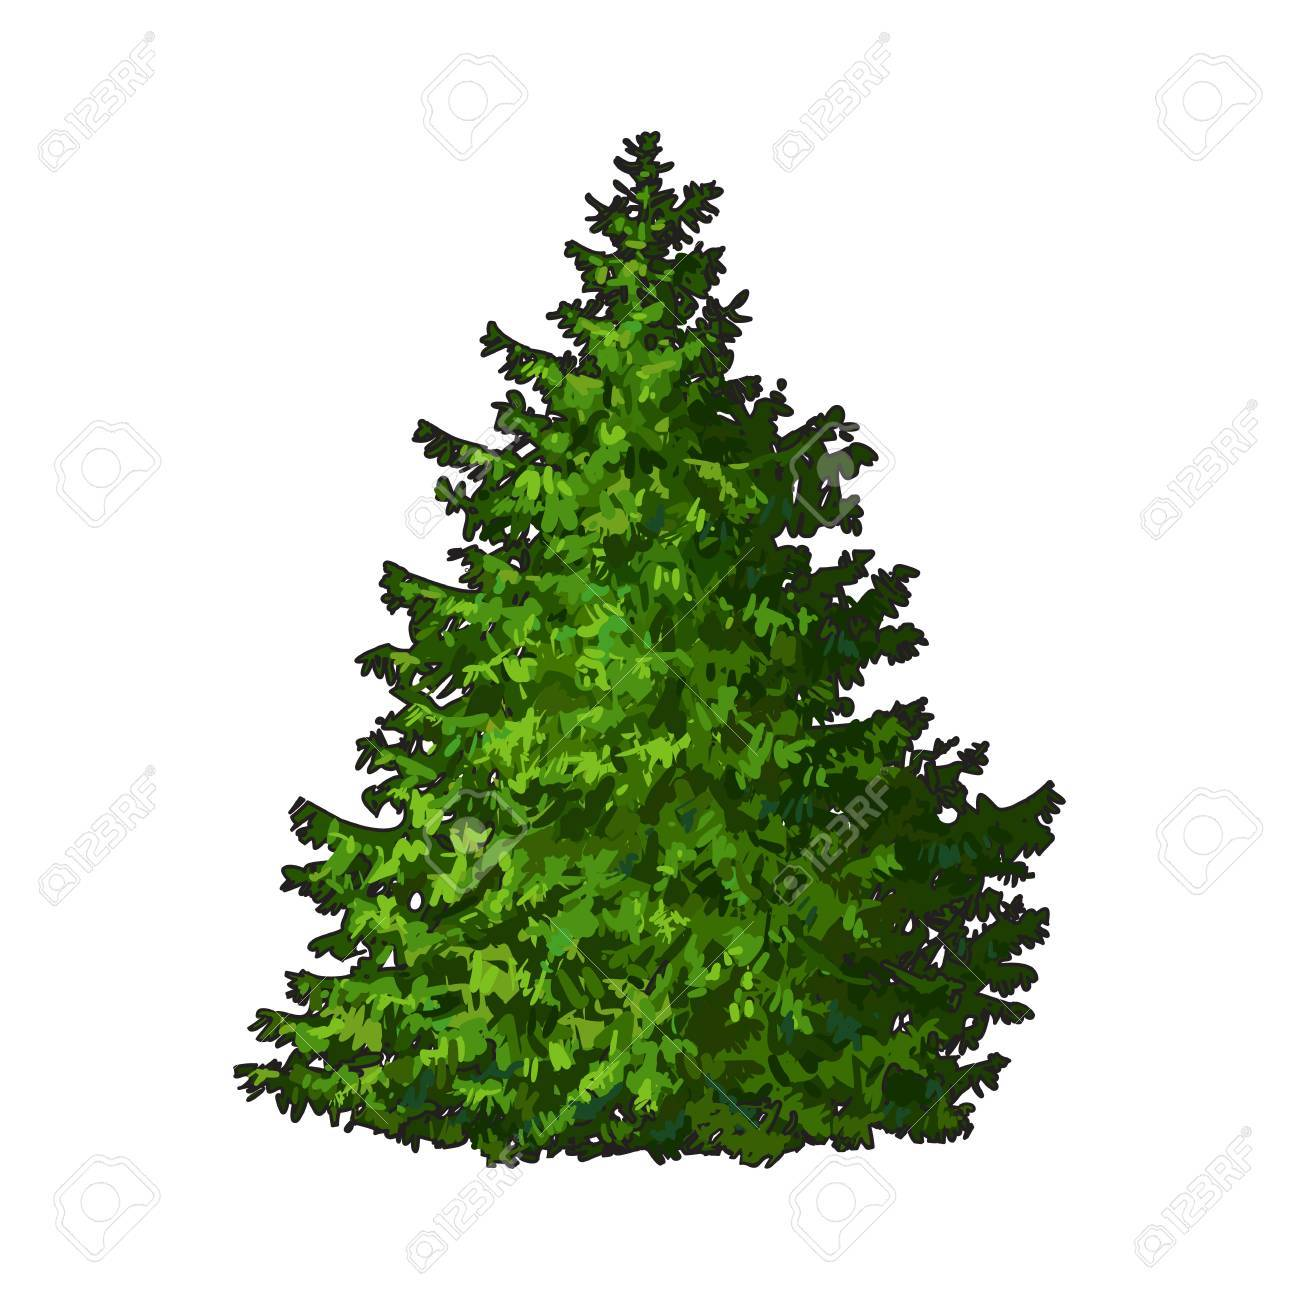 Fluffy Christmas Tree With No Decorations, Sketch Style Vector ...